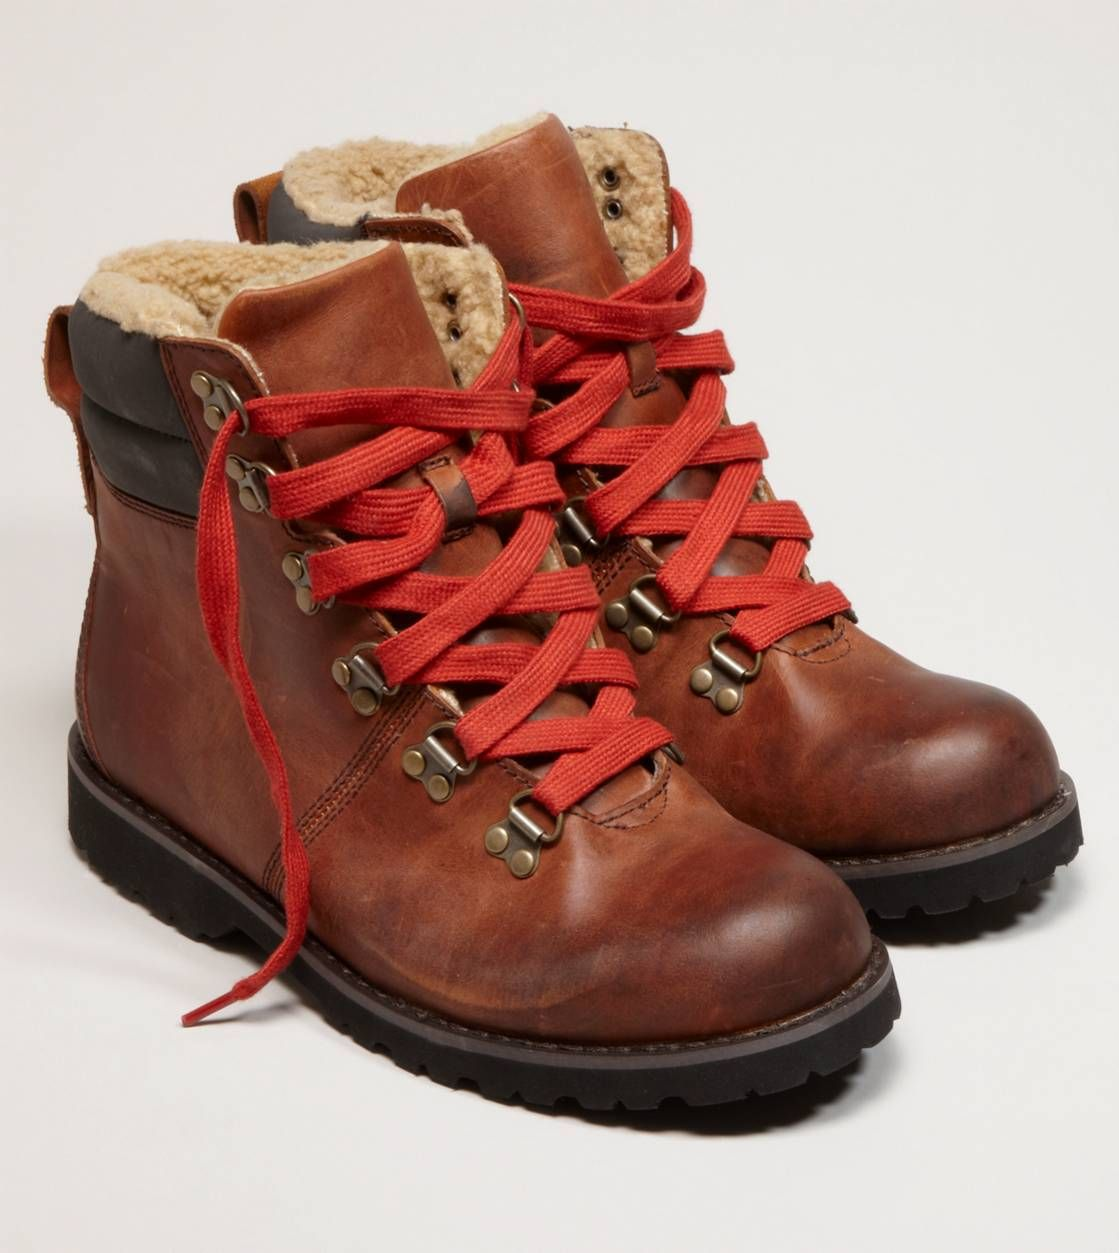 I love these boots with the red laces e85927368